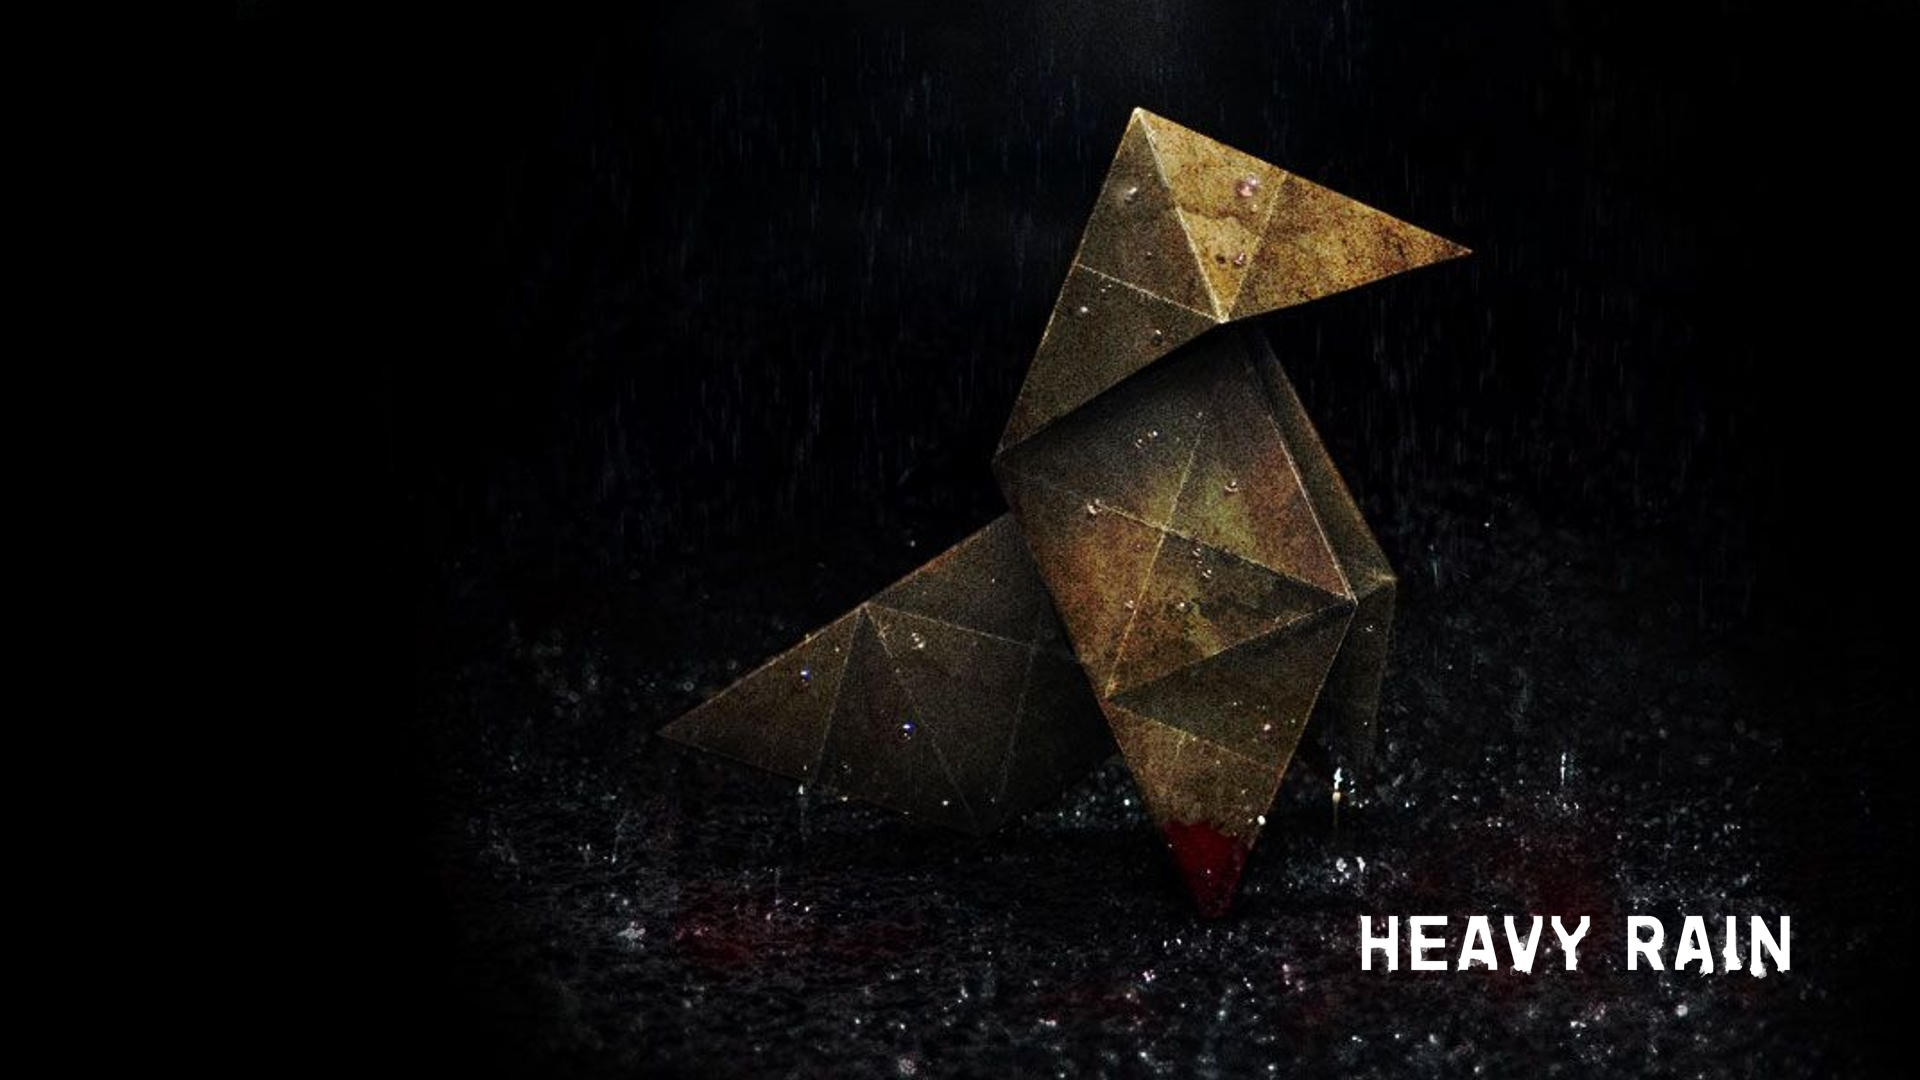 Heavy Rain images HR HD wallpaper and background photos ...